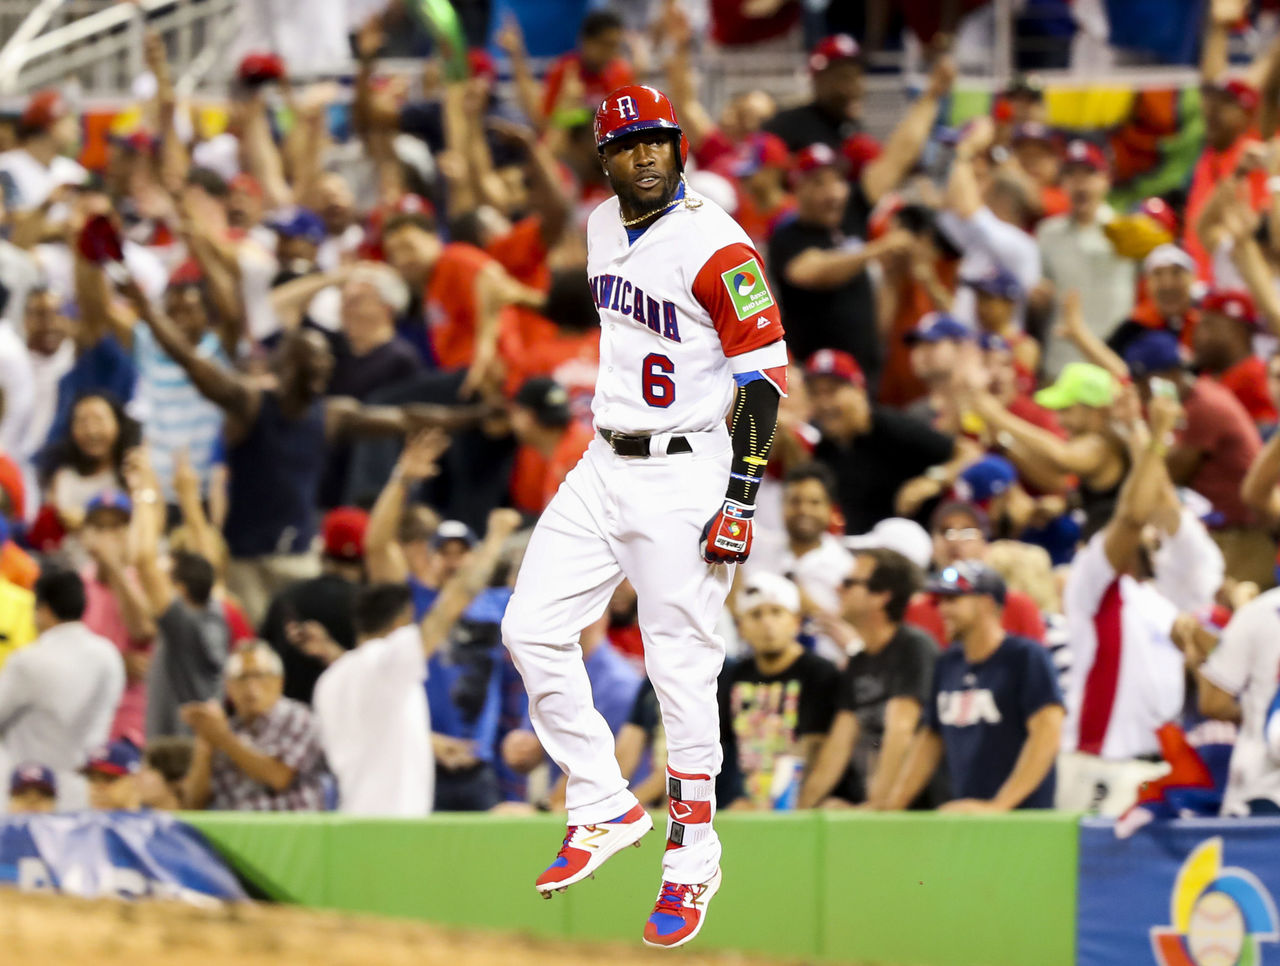 Cropped 2017 03 12t033642z 178216852 nocid rtrmadp 3 baseball world baseball classic usa at dominican republic